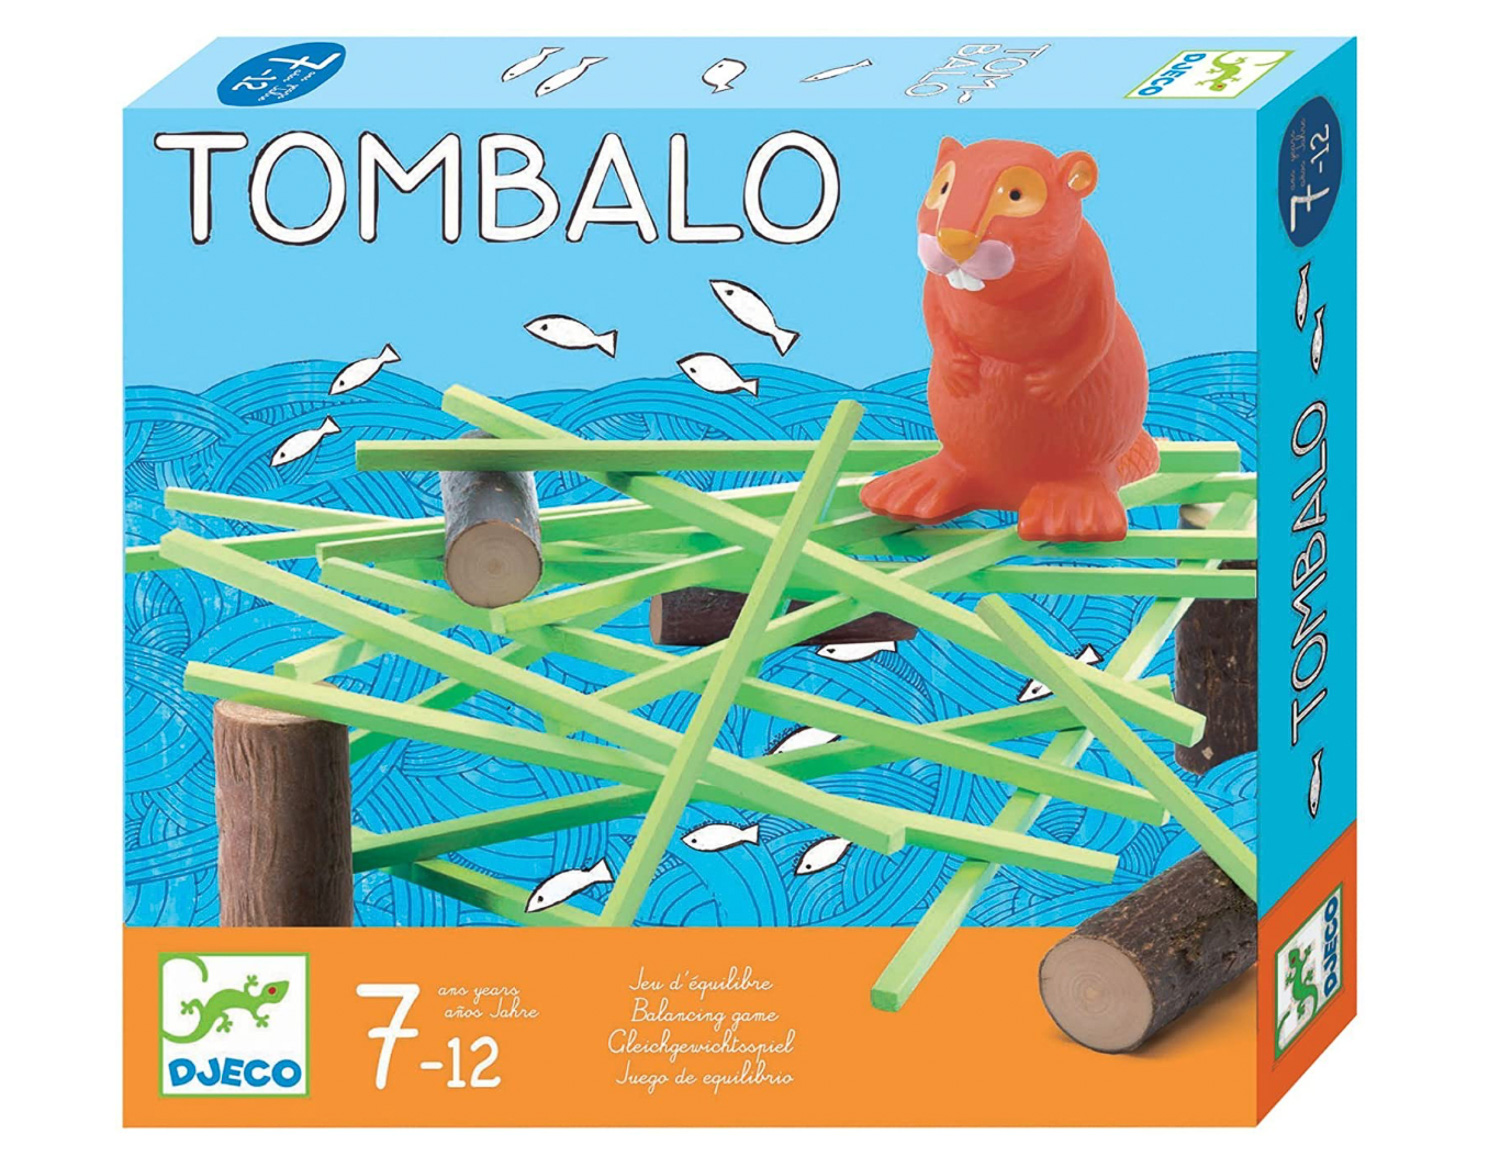 Tombalo is one of our favorite kids board games!